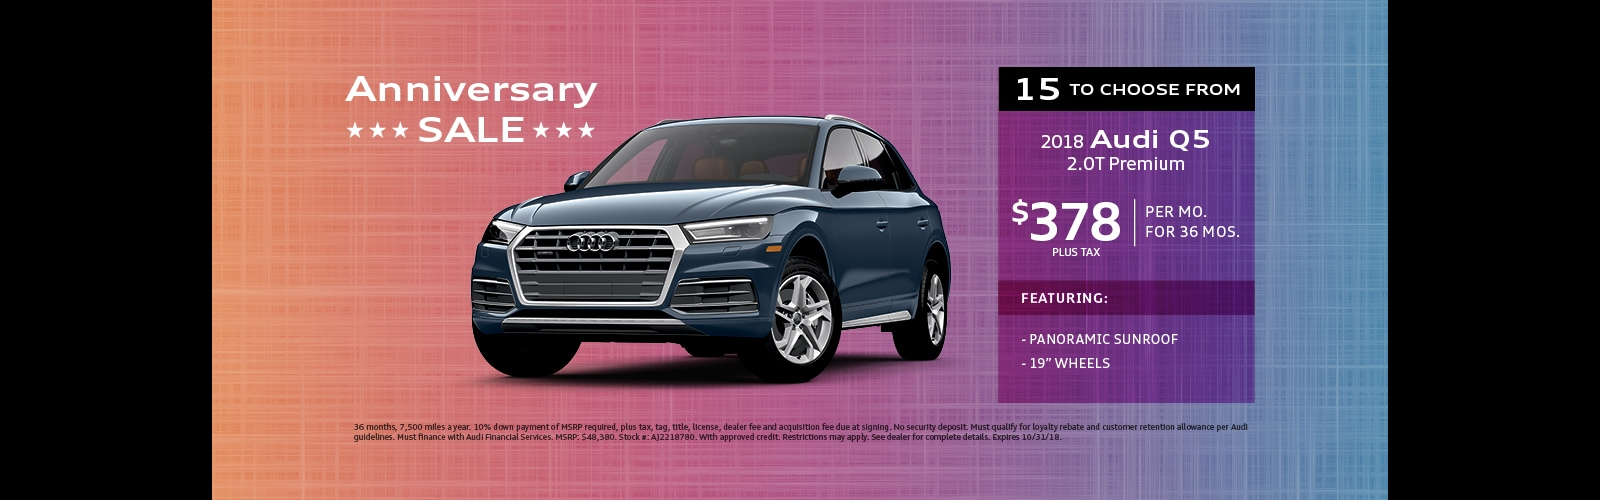 Official Audi Dealer In Stuart FL - Cascade audi